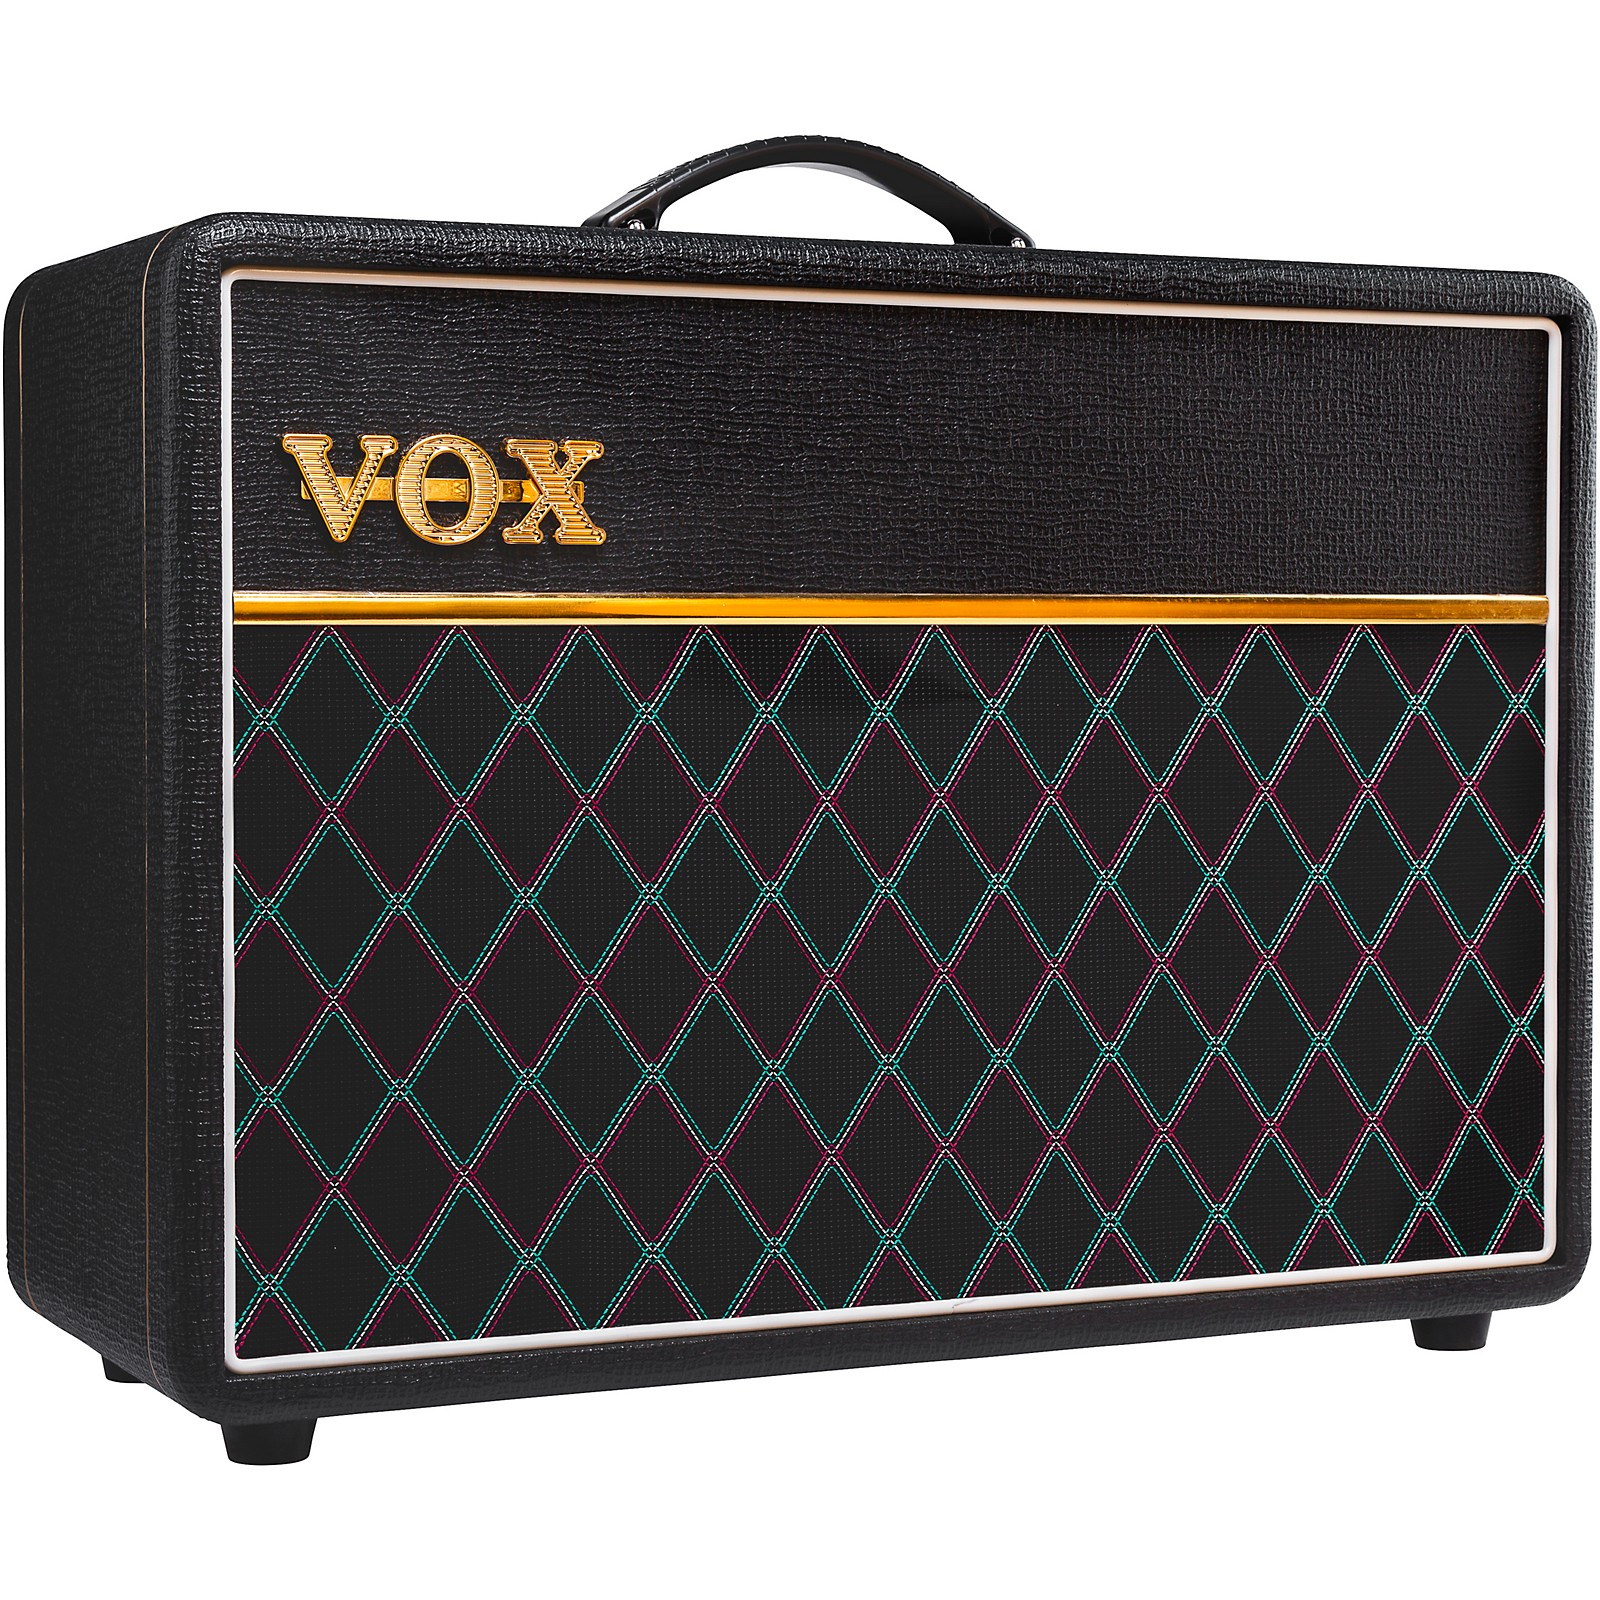 Vox Limited-Edition AC10C1 10W 1x10 Tube Guitar Combo Amp with Creamback Speaker and JJ Tubes